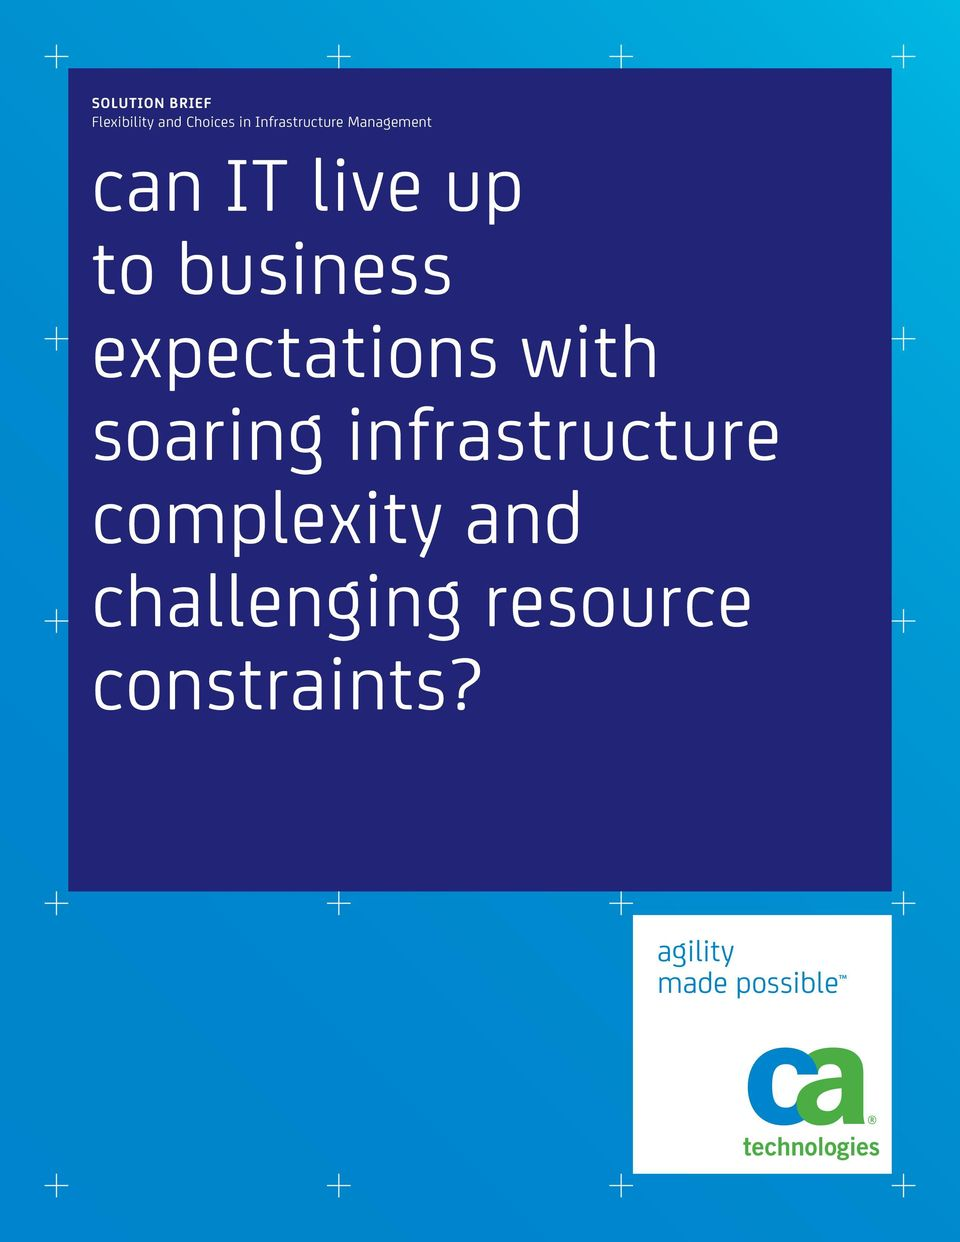 business expectations with soaring infrastructure